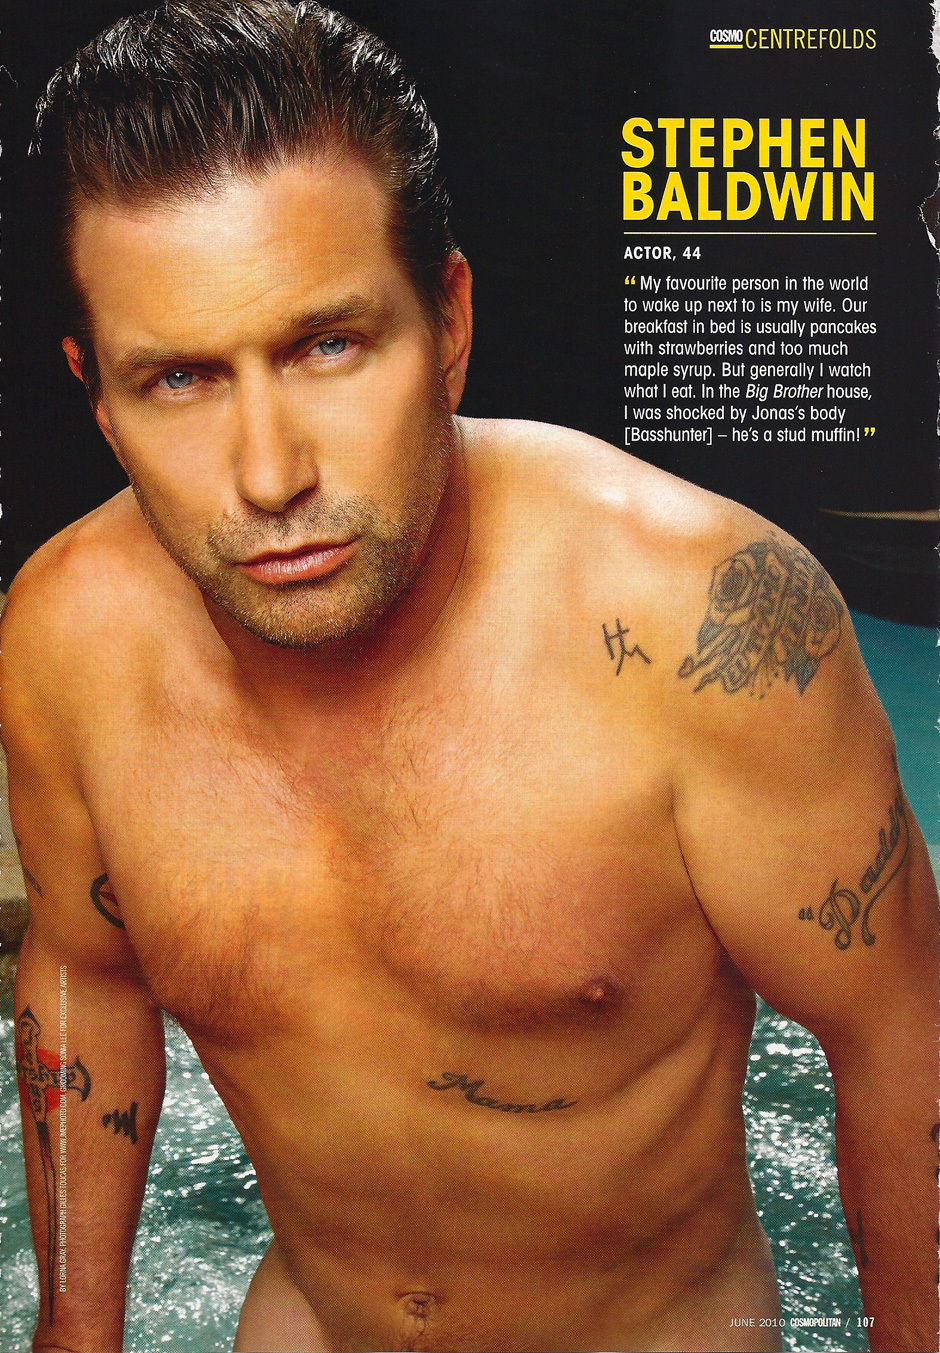 Stephen Baldwin Naked: Nude Photoshoot Along With Jesse Metcalfe